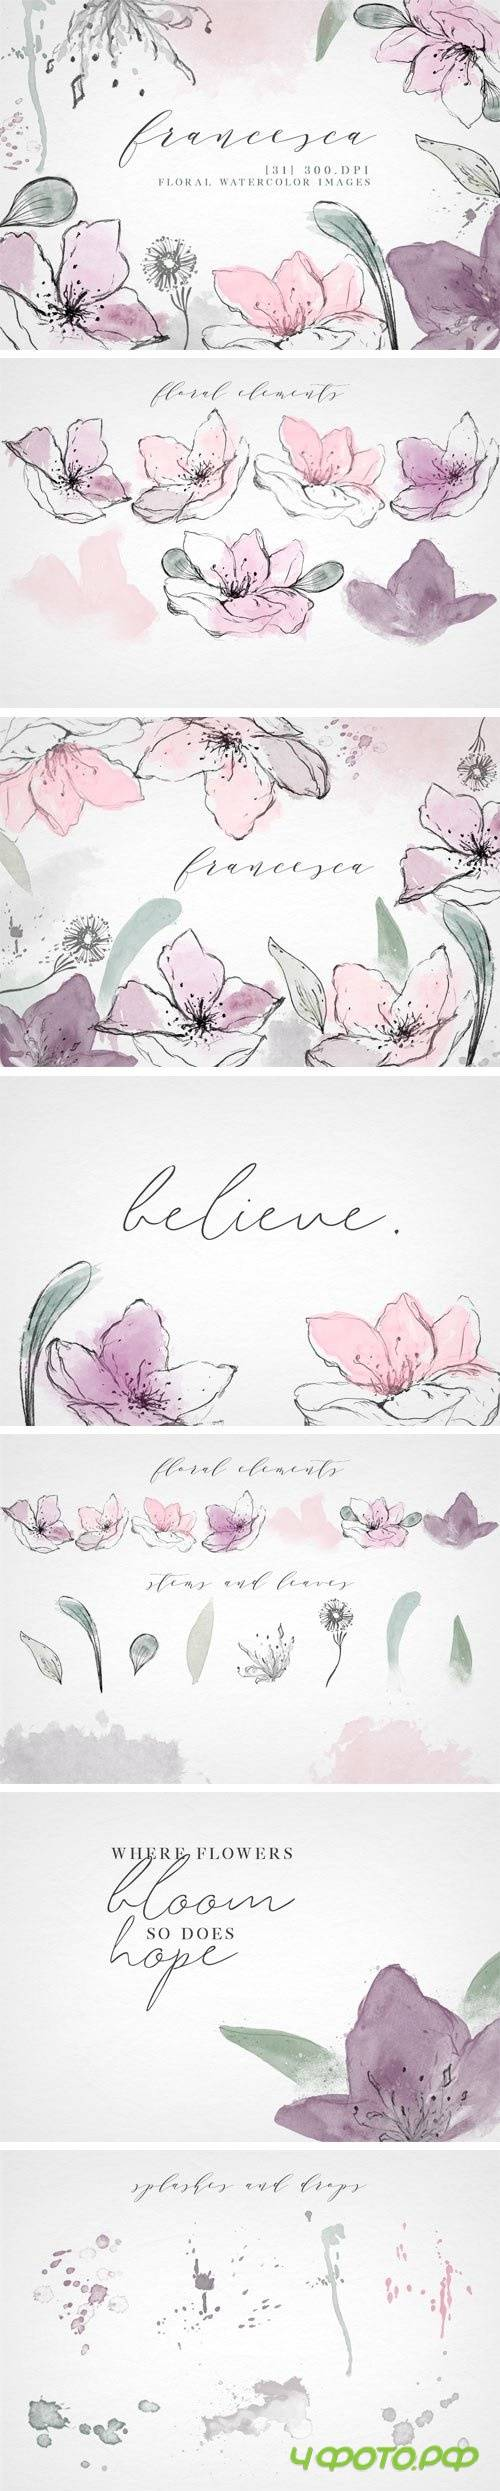 Watercolor Floral Clip Art Elements - 2338264